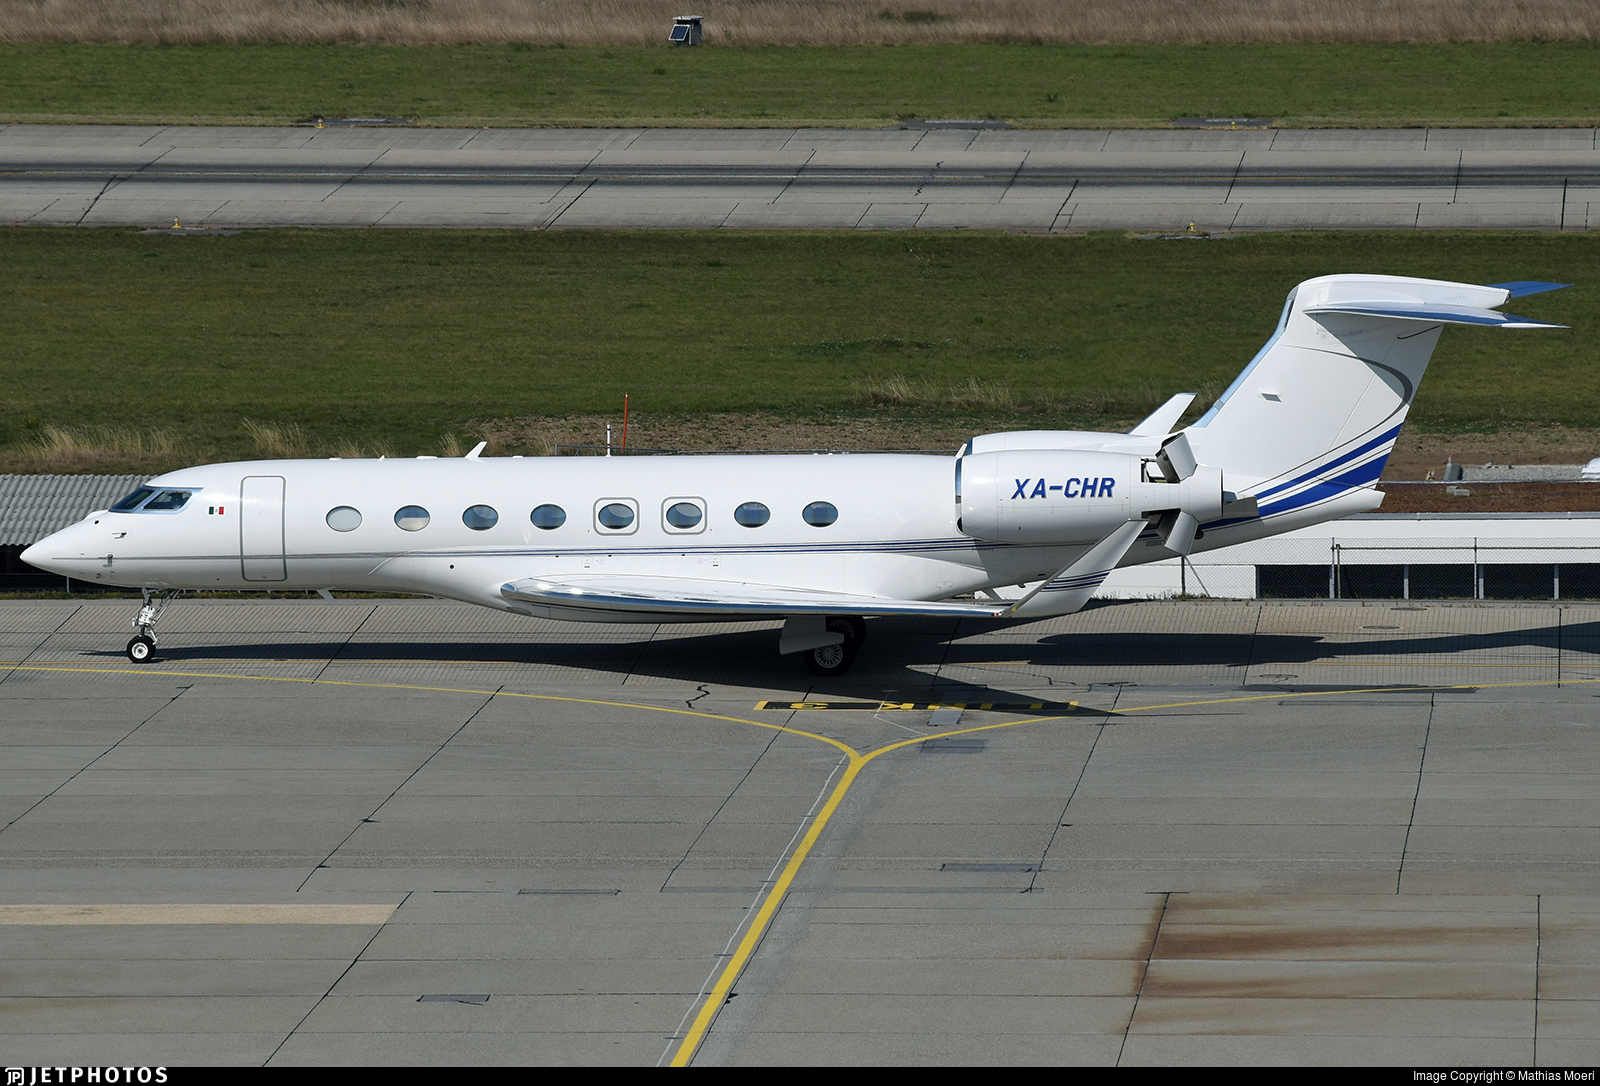 XA-CHR - Gulfstream G650 - Private